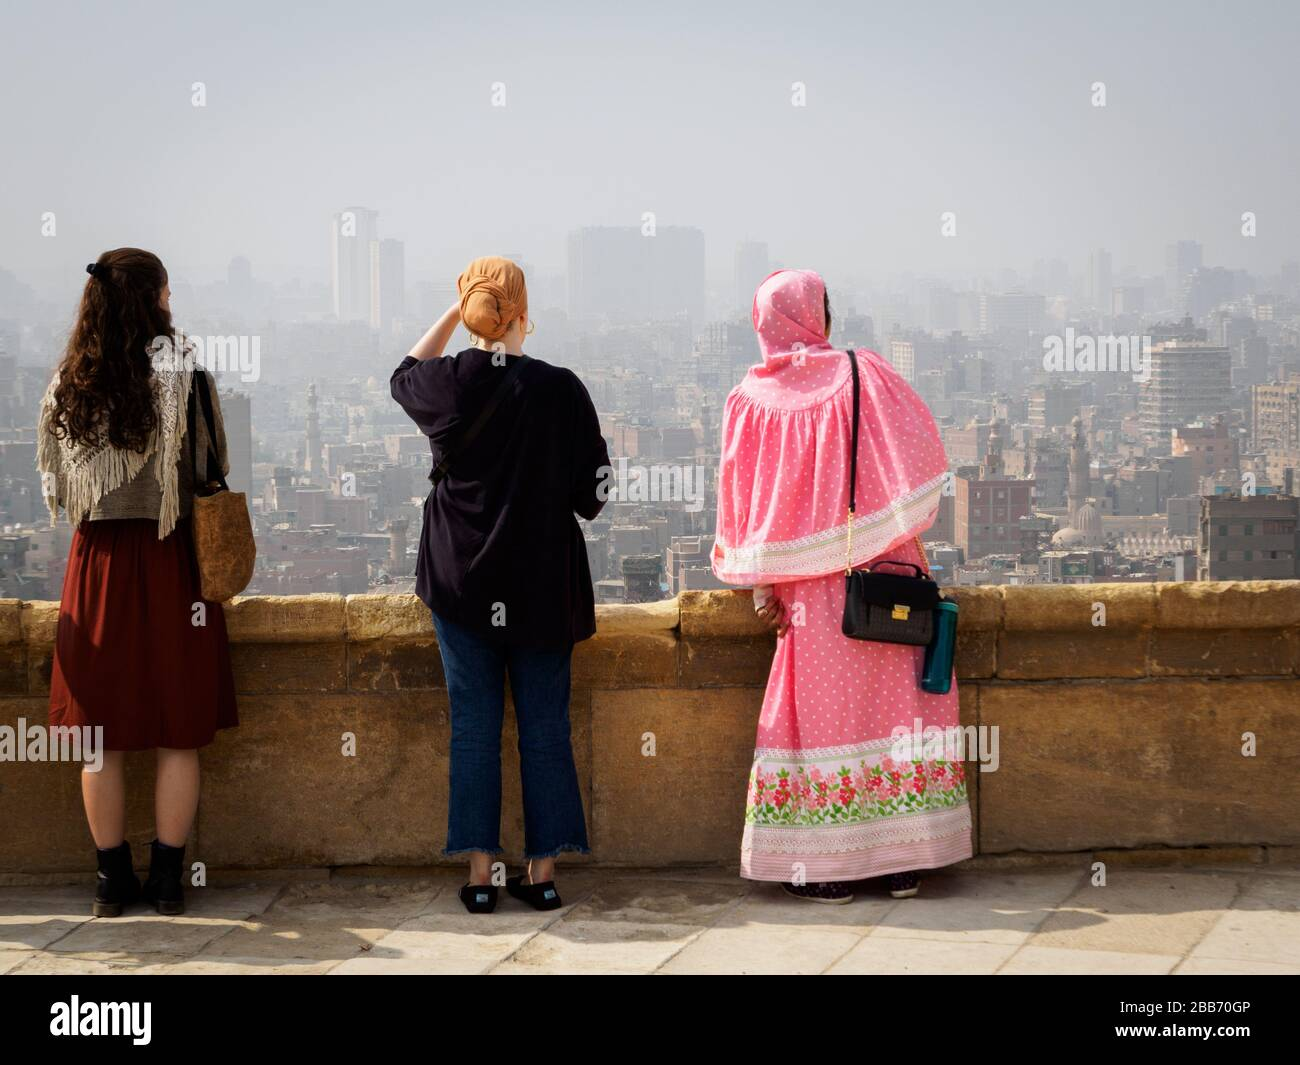 woman adult date in cairo